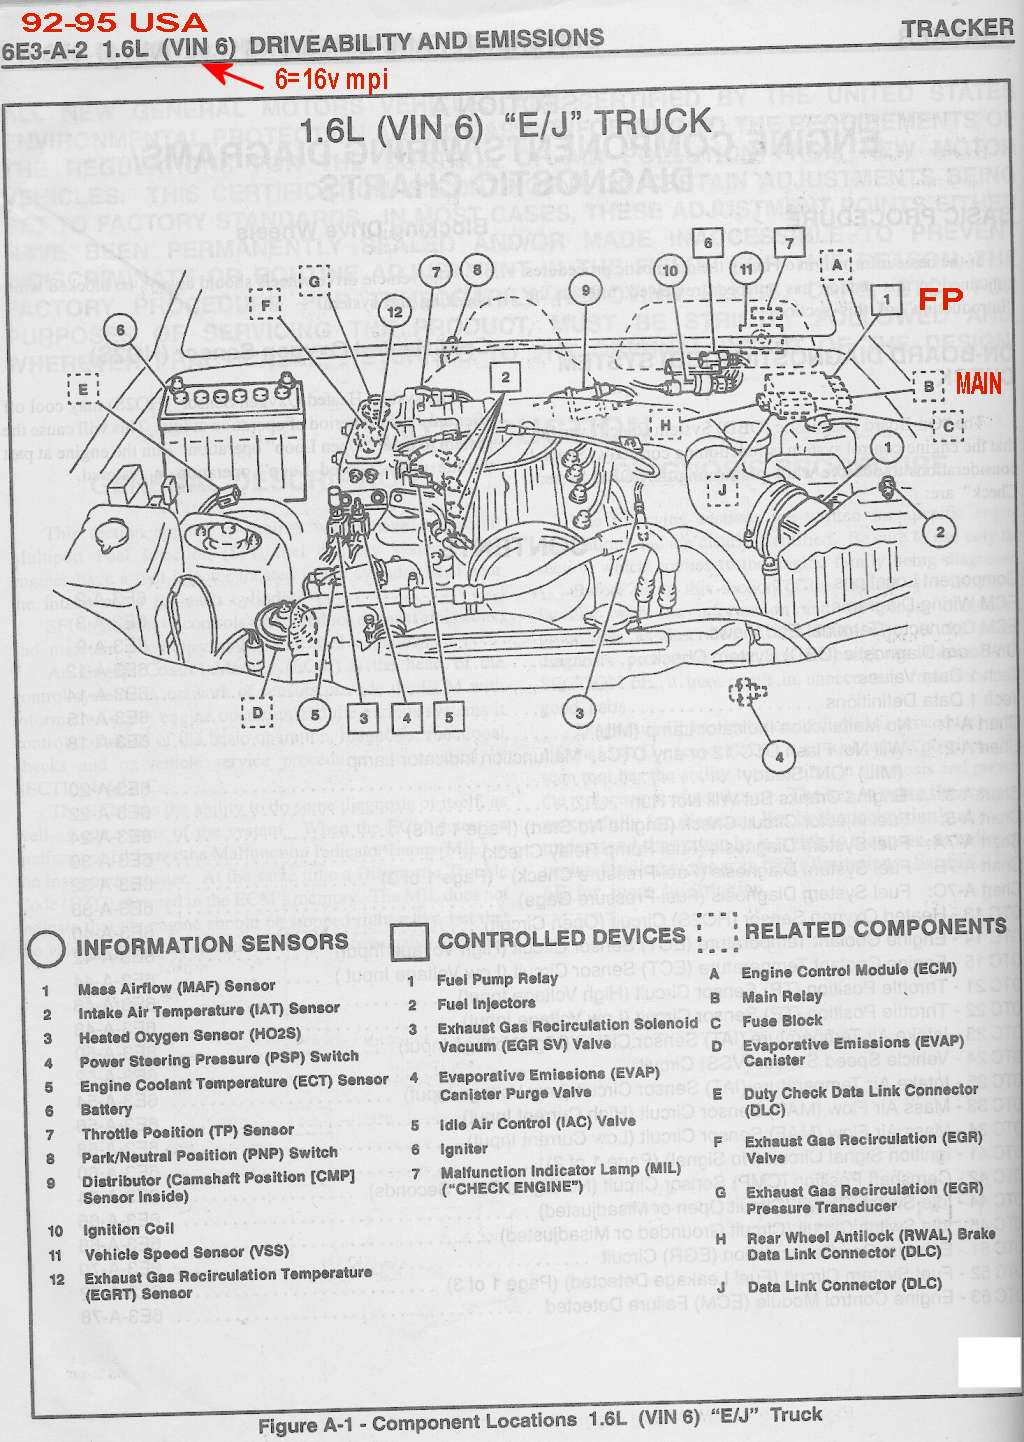 92 Geo Tracker Wiring Diagram furthermore 93 Geo Metro Fuse Box Diagram moreover How Can You View A Fuse Box Diagram Of A 2001 Honda Civic Fuse Box as well 201589 2005 Nissan Pathfinder Starter Location besides 7osz8 Trying Electrical Diagram 1986 D 21 Nissan. on 1994 nissan sentra ecu diagrams